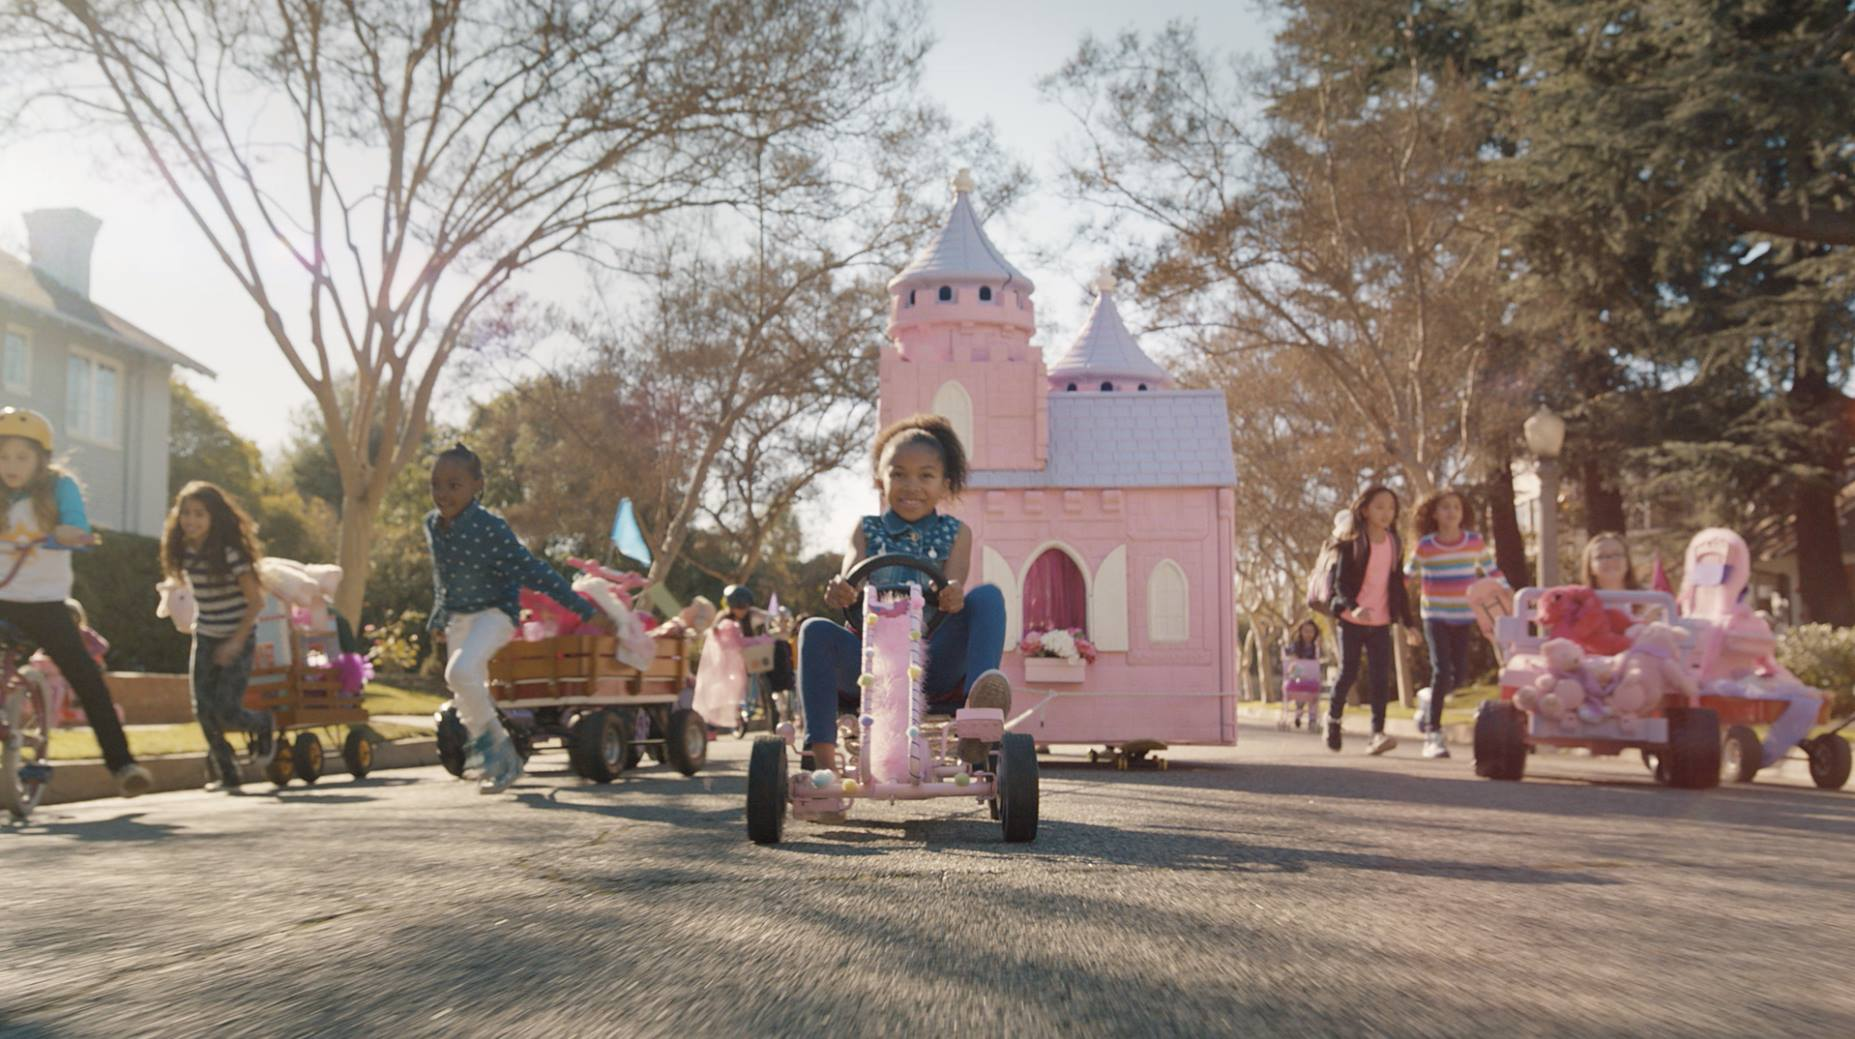 GoldieBlox Rocket Launches to Space in Super Bowl Ad (Video)